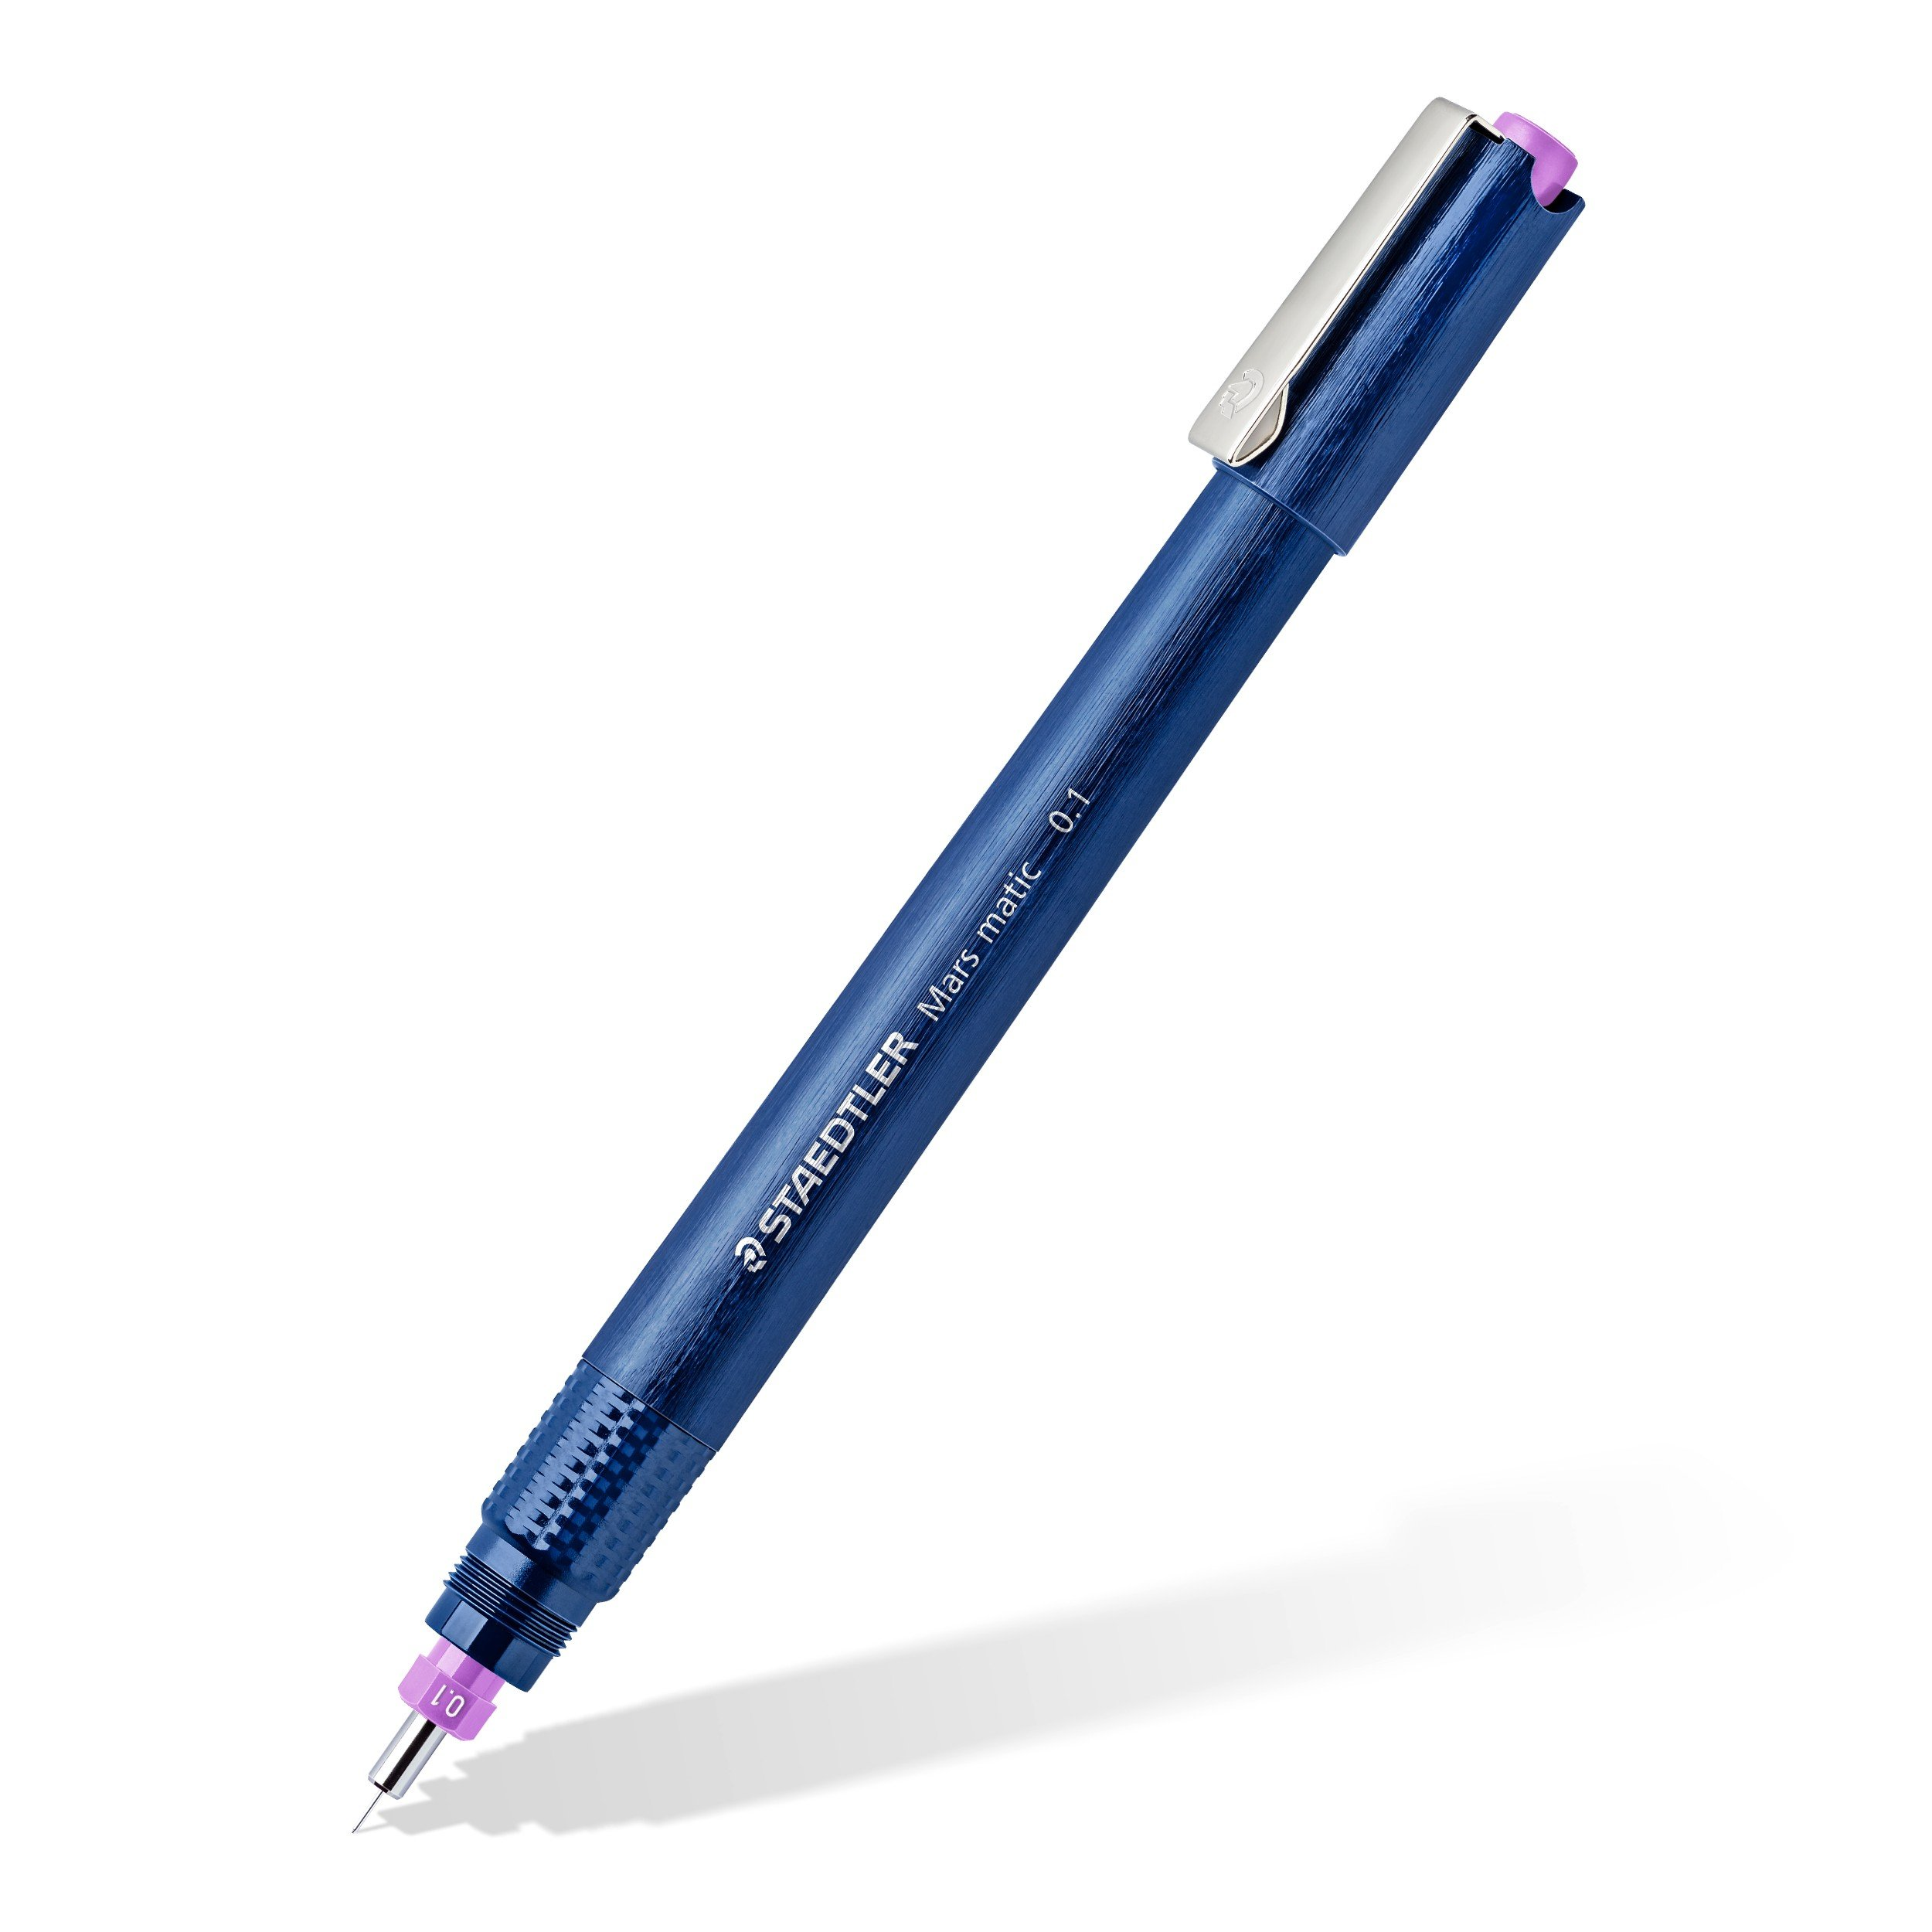 Staedtler Mars Matic 700 Technical Pen with Tubular Tip - 0.1 mm by STAEDTLER